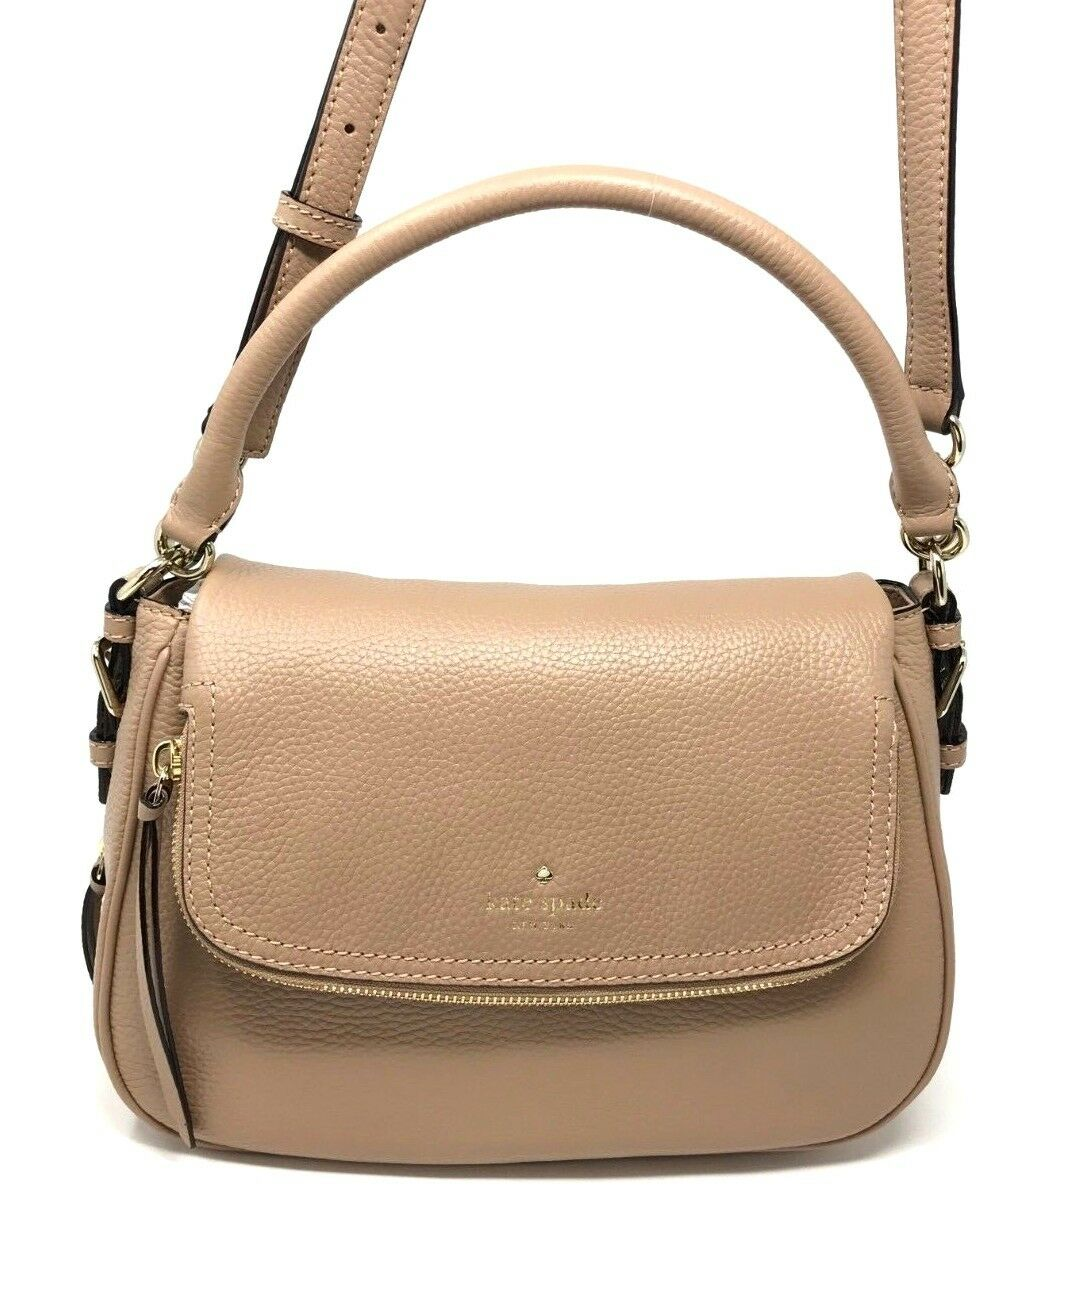 Kate Spade Cobble Hill Deva Hazel Leather Crossbody Bag